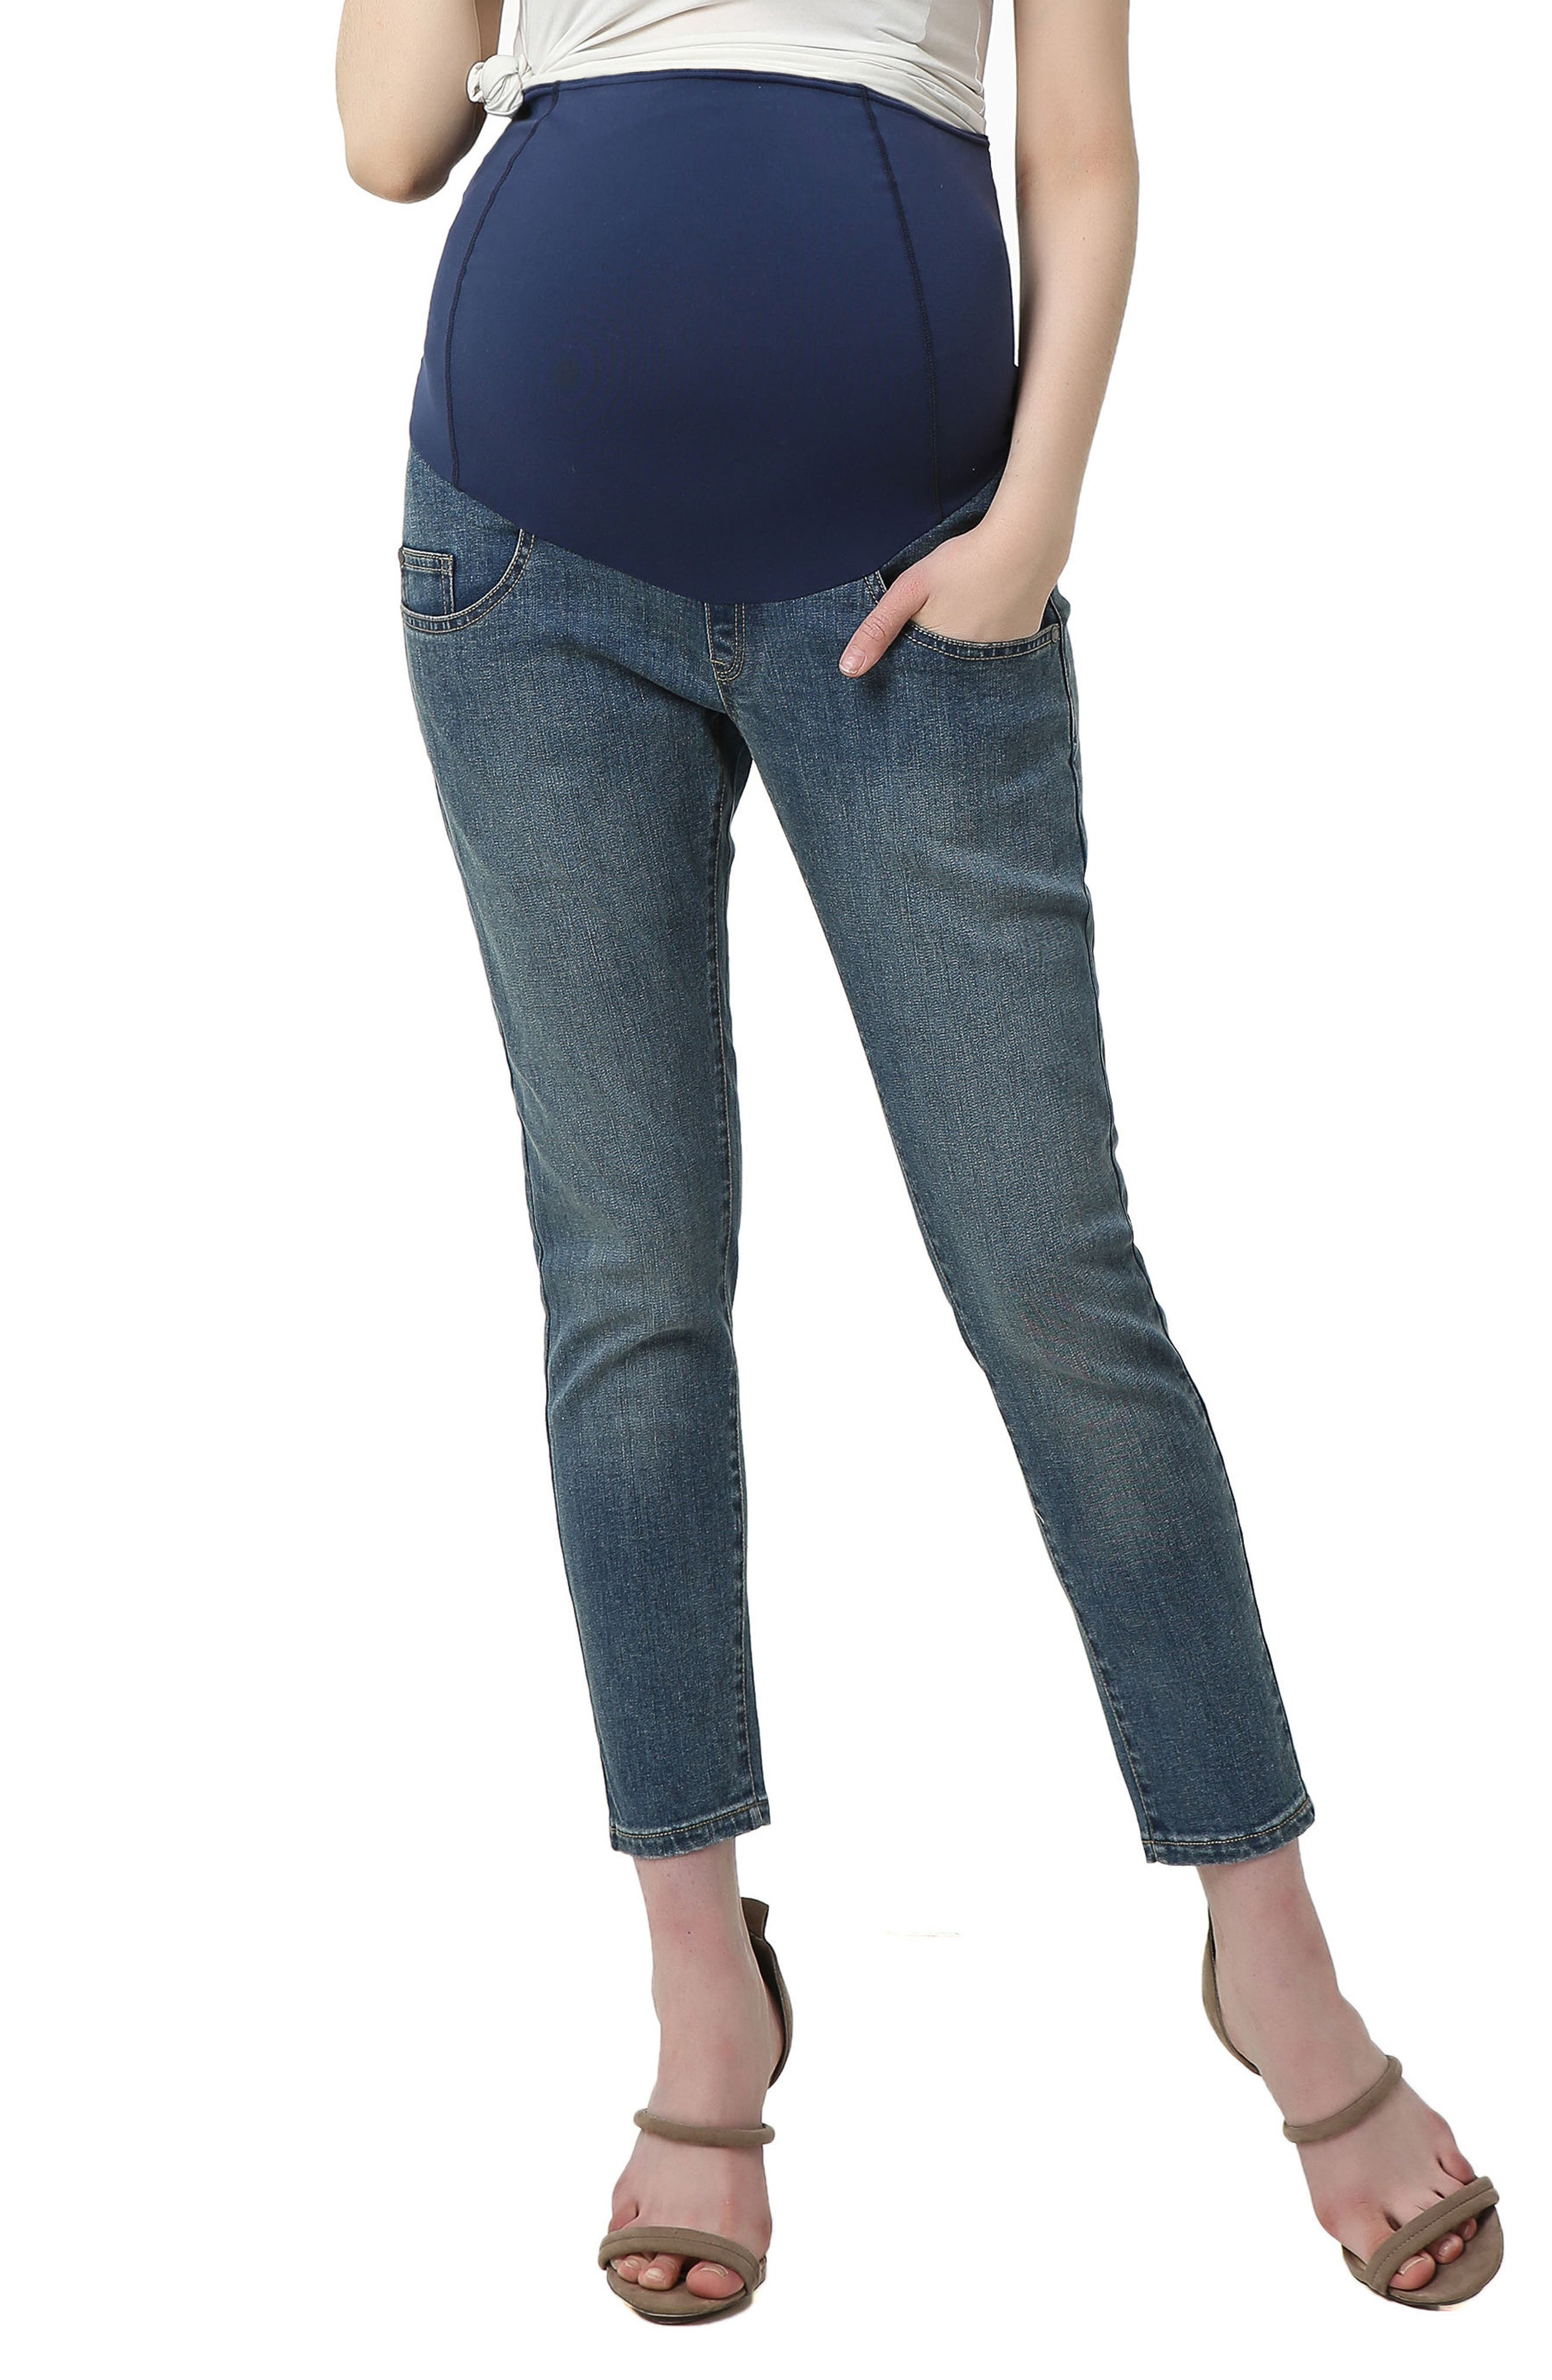 An elastic waistband with contoured panels reaches high on your midriff to securely cradle your baby bump, in skinnies with plenty of stretch throughout. Style Name: Kimi And Kai Tara Crop Maternity Skinny Jeans. Style Number: 5602982. Available in stores.